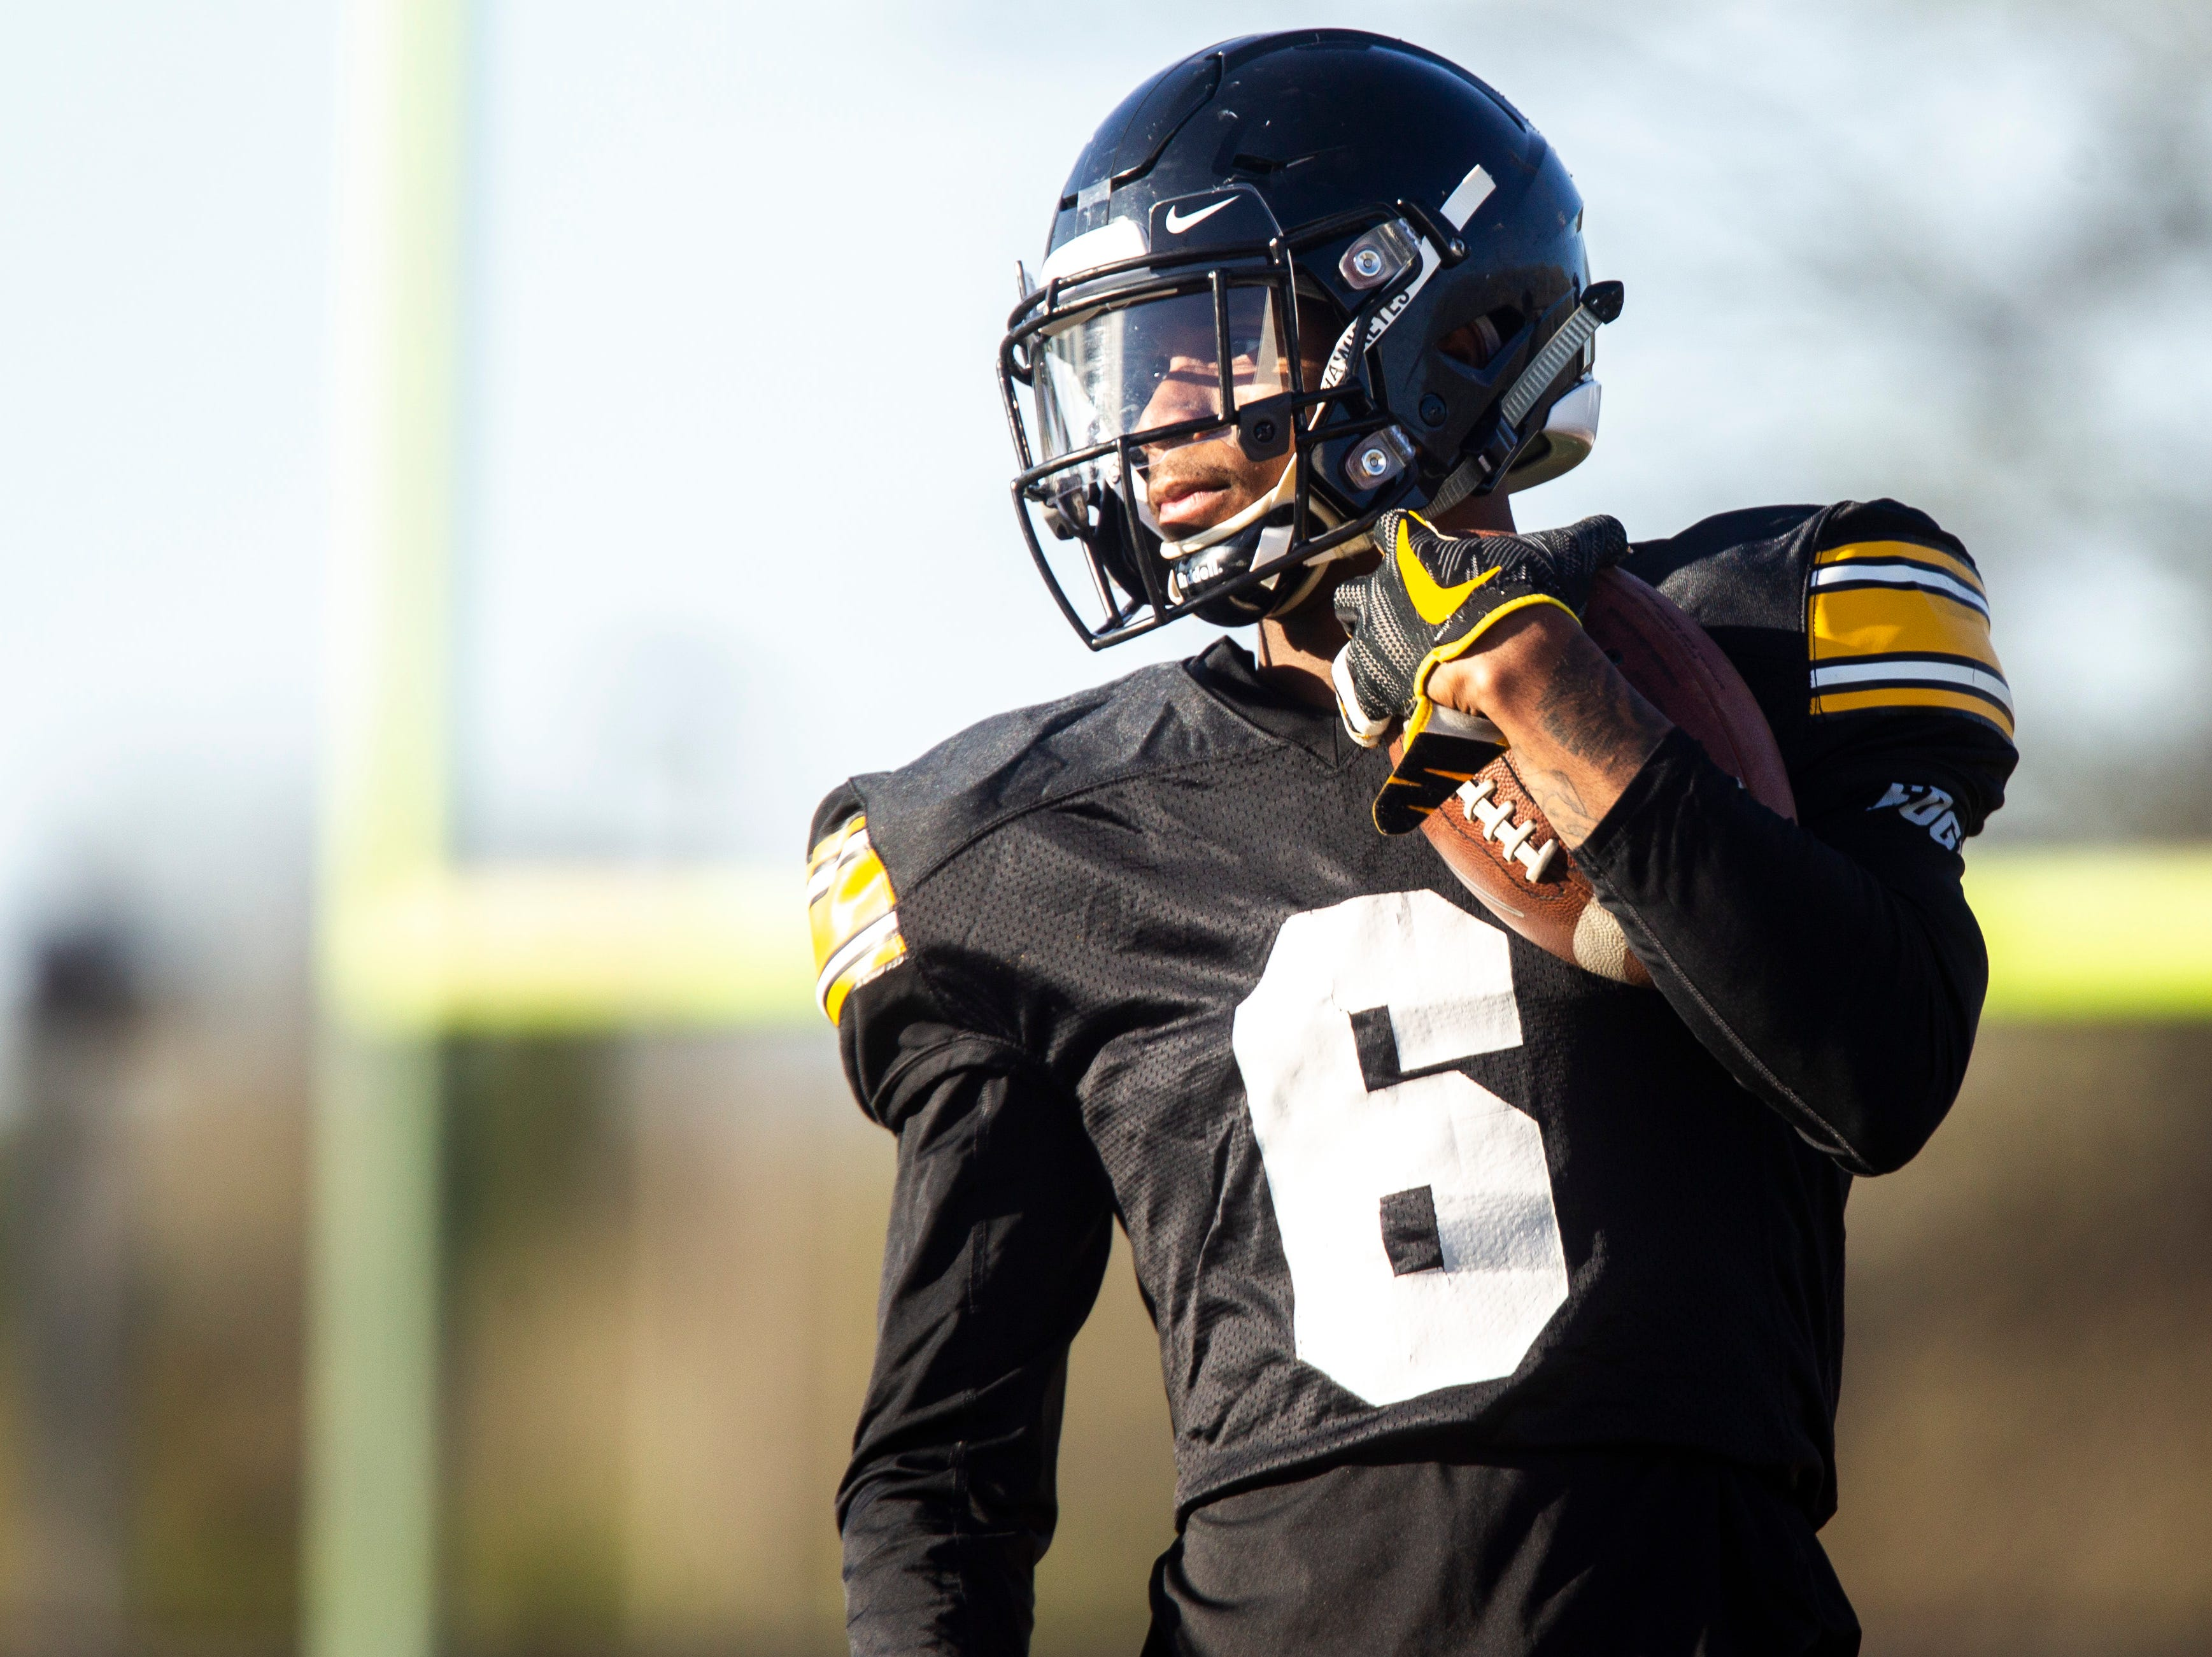 Iowa wide receiver Ihmir Smith-Marsette (6) looks up the field during the final spring football practice, Friday, April 26, 2019, at the University of Iowa outdoor practice facility in Iowa City, Iowa.